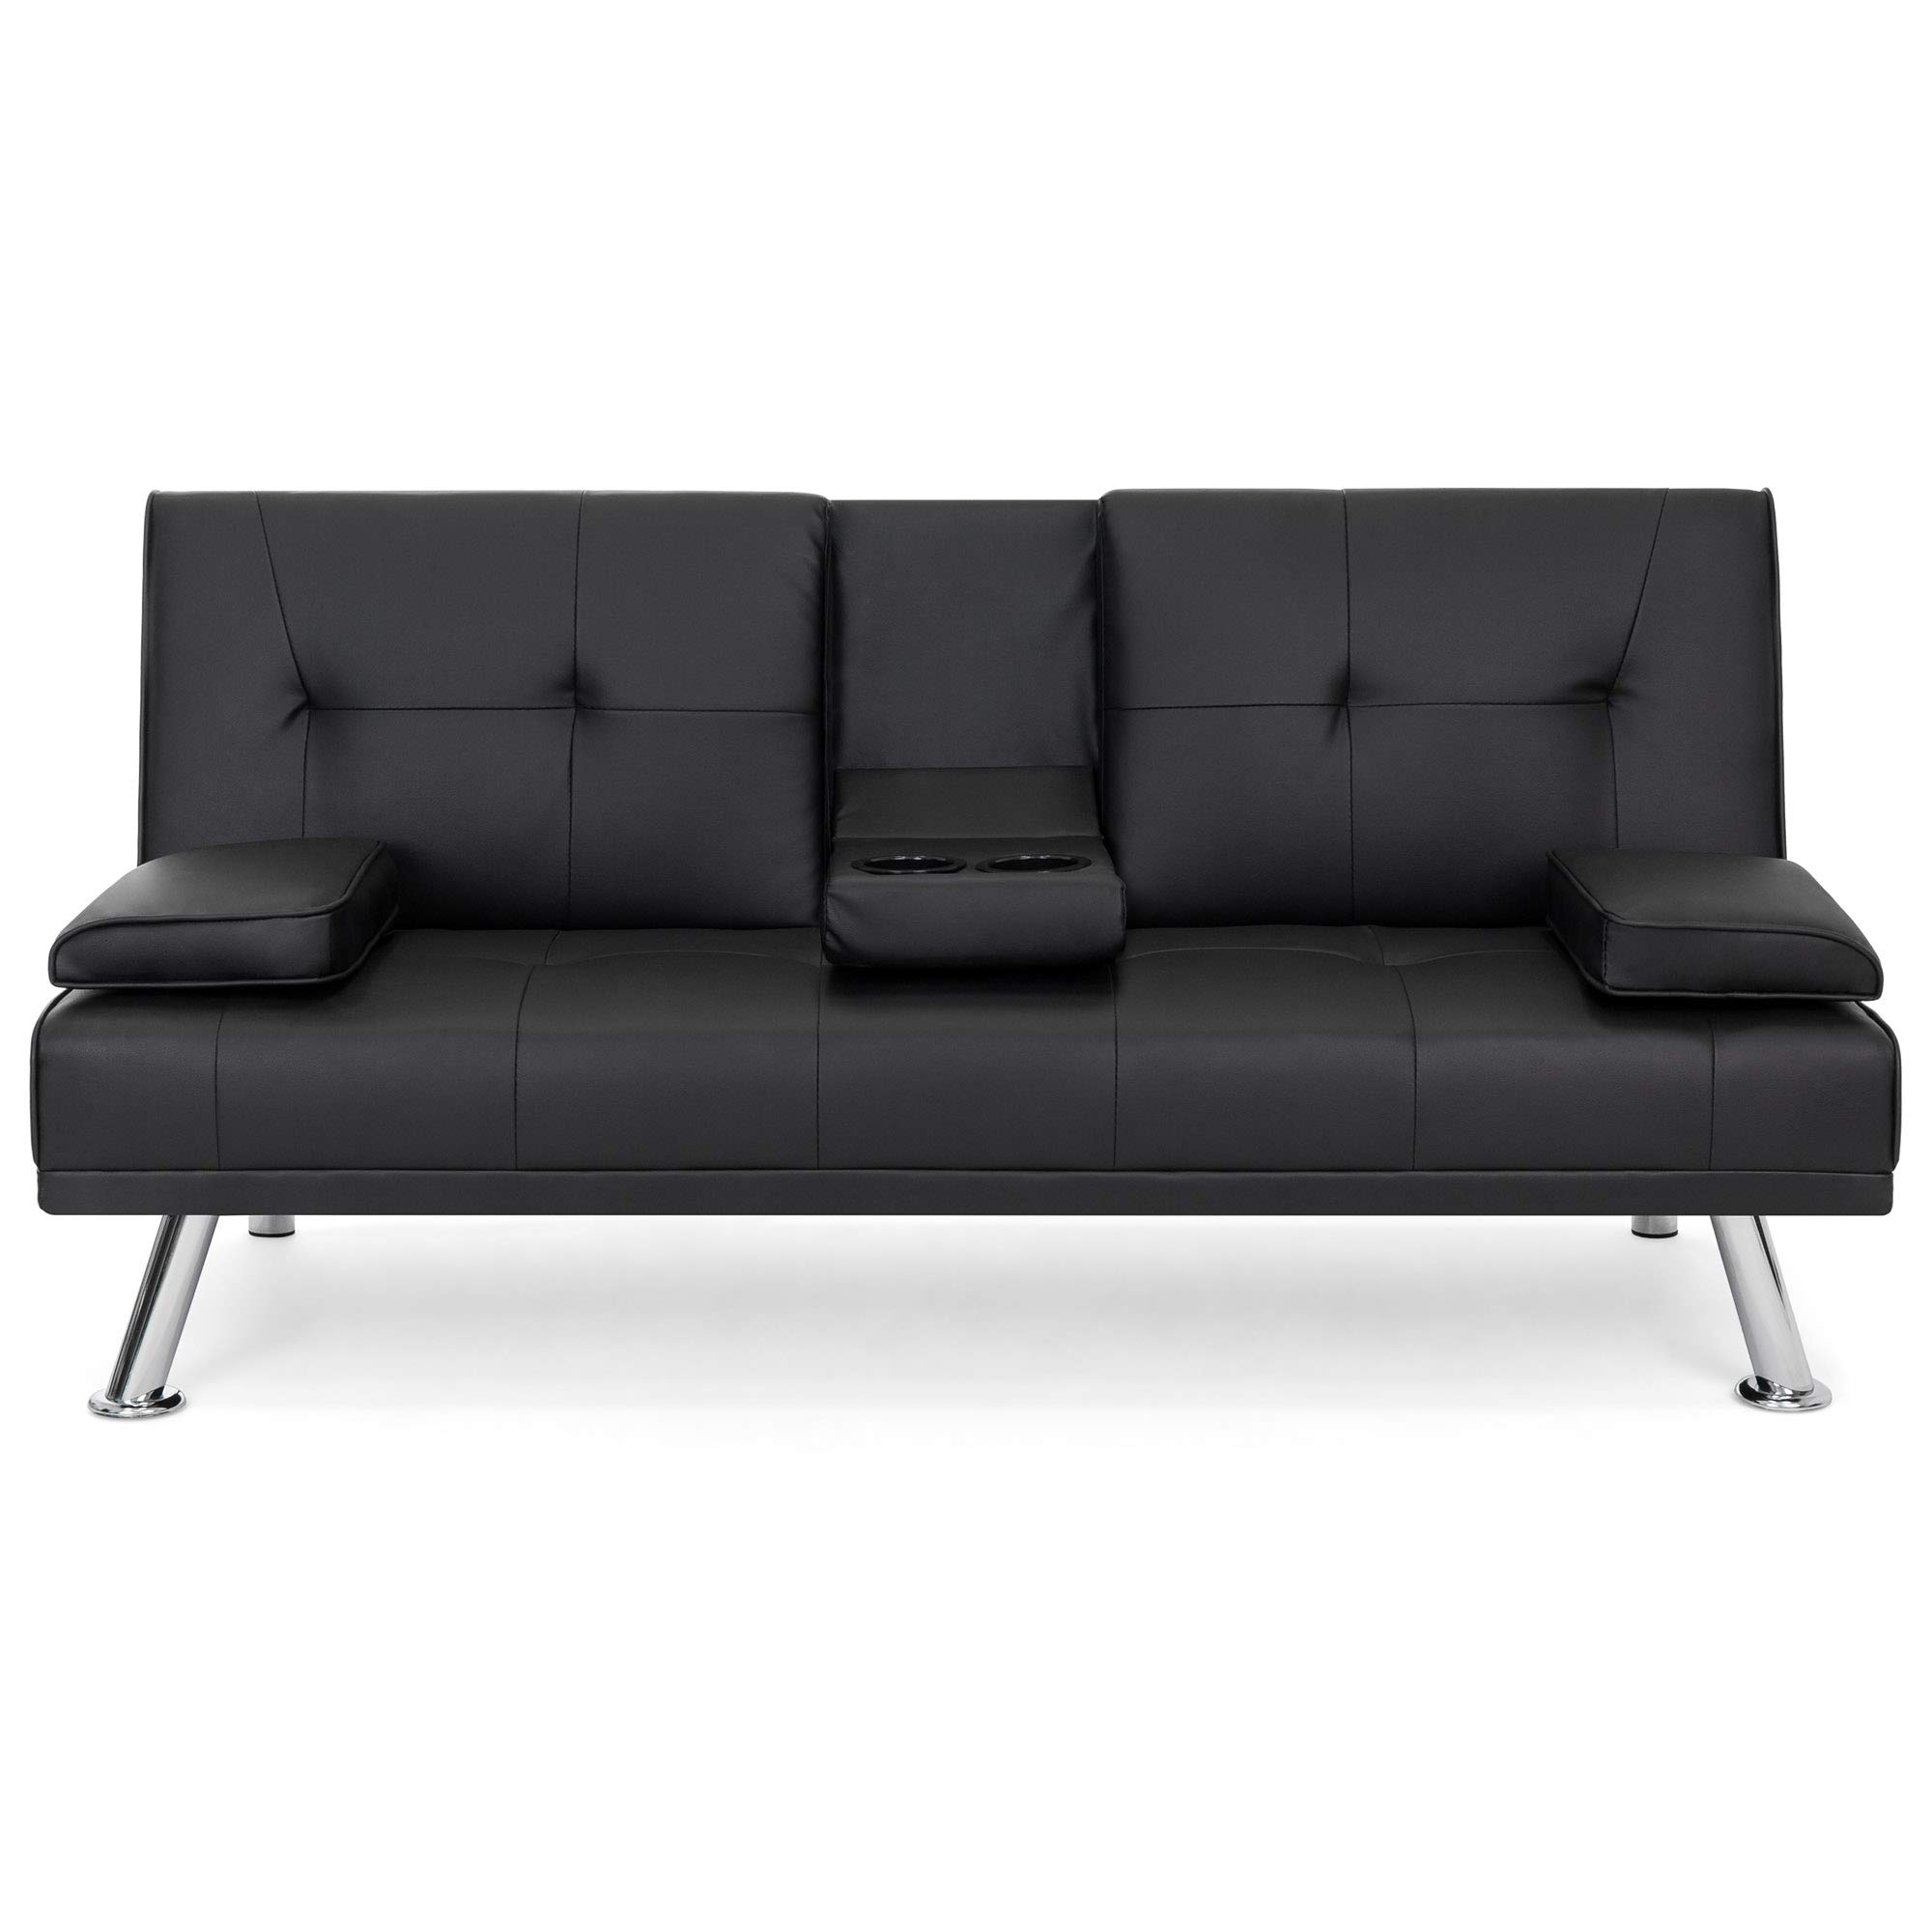 Best Choice Products Modern Faux Leather Futon Sofa Bed Fold Up & Down Recliner Couch with Cup Holders - Black by Best Choice Products